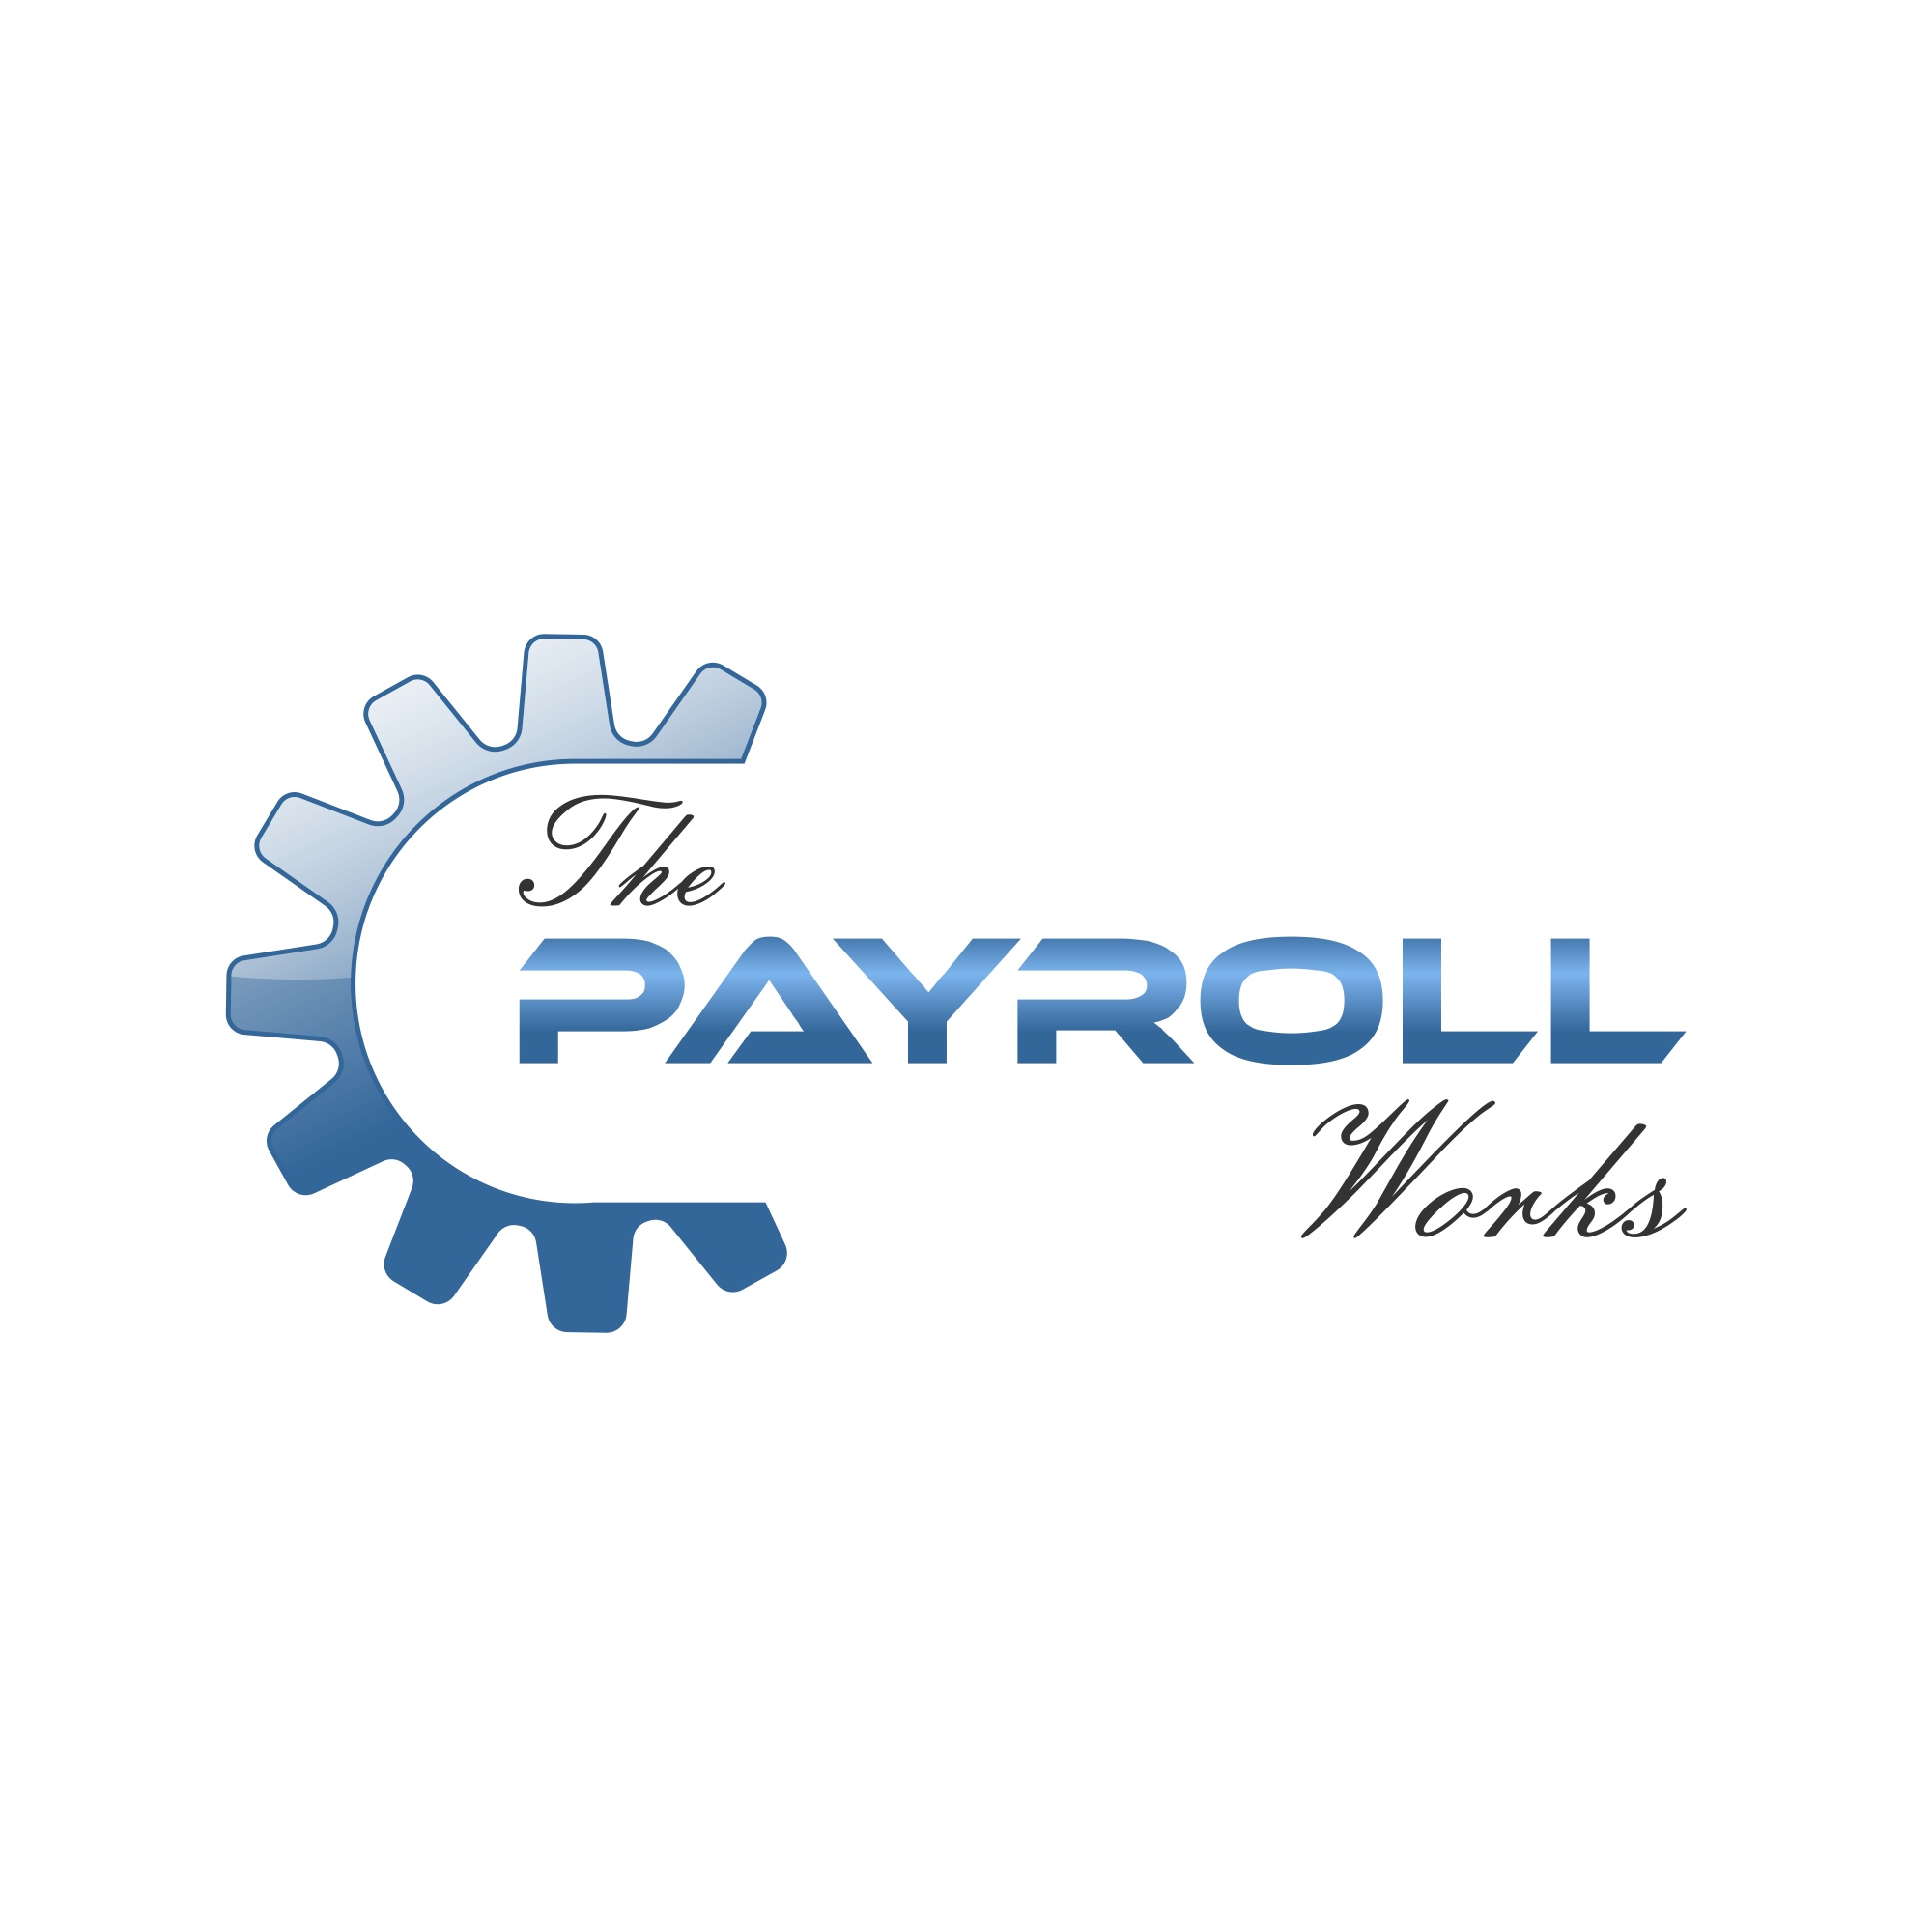 Logo Design by M21 - Entry No. 95 in the Logo Design Contest Captivating Logo Design for The Payroll Works.